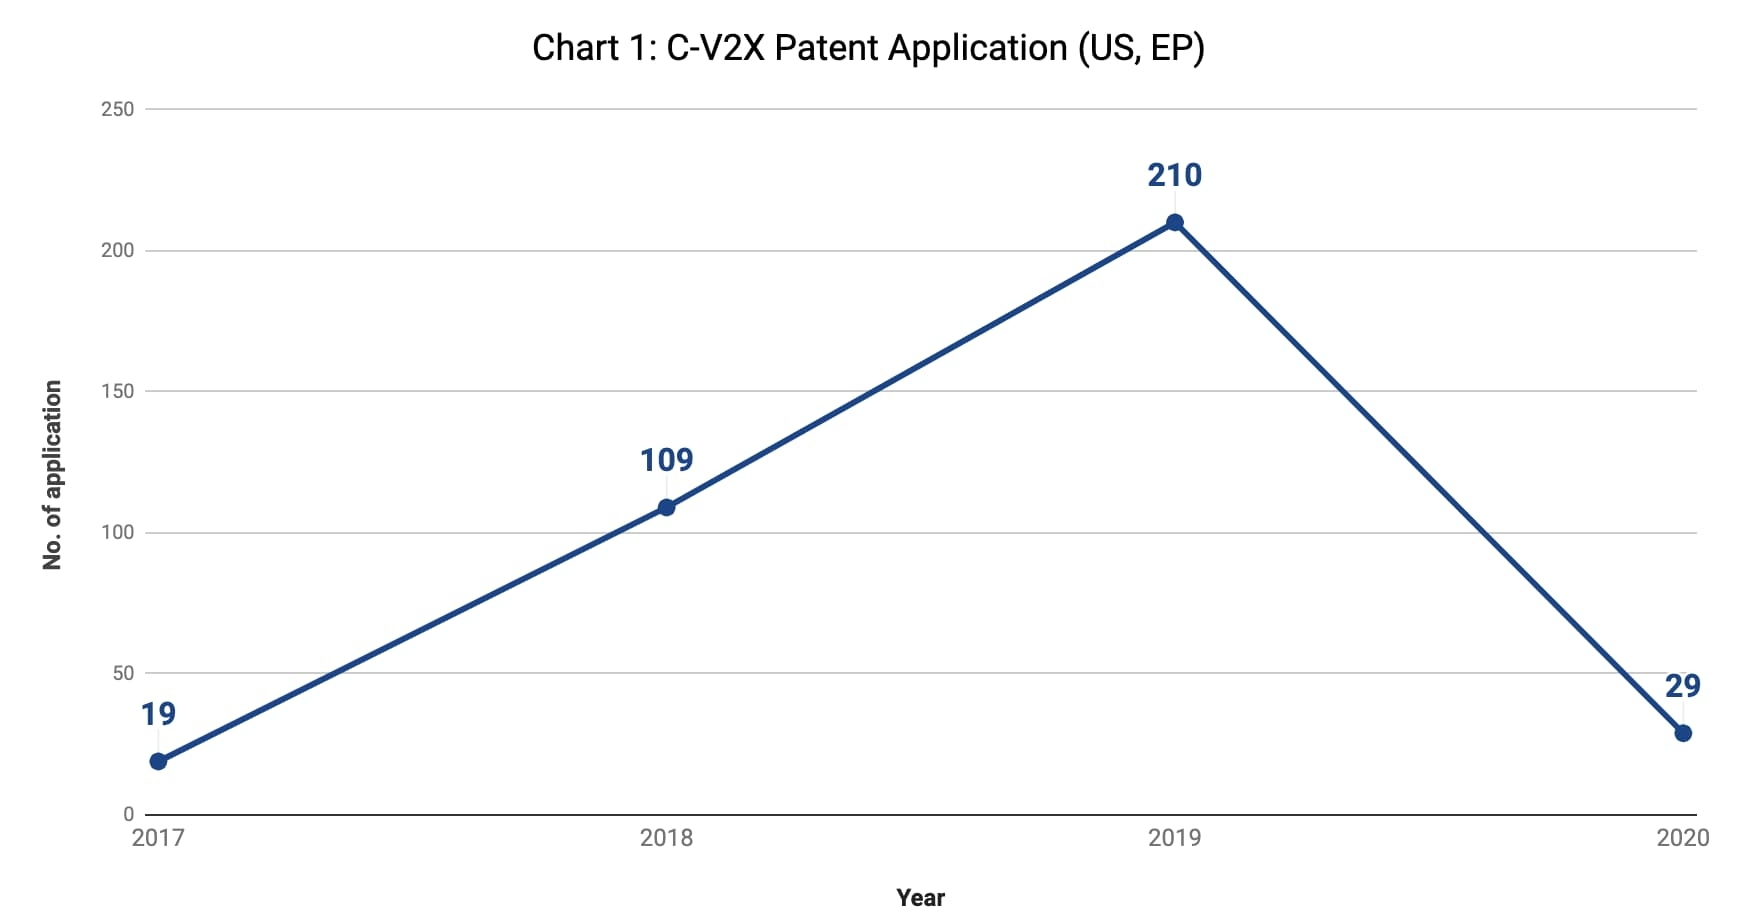 C-V2X patent application (US, EP)